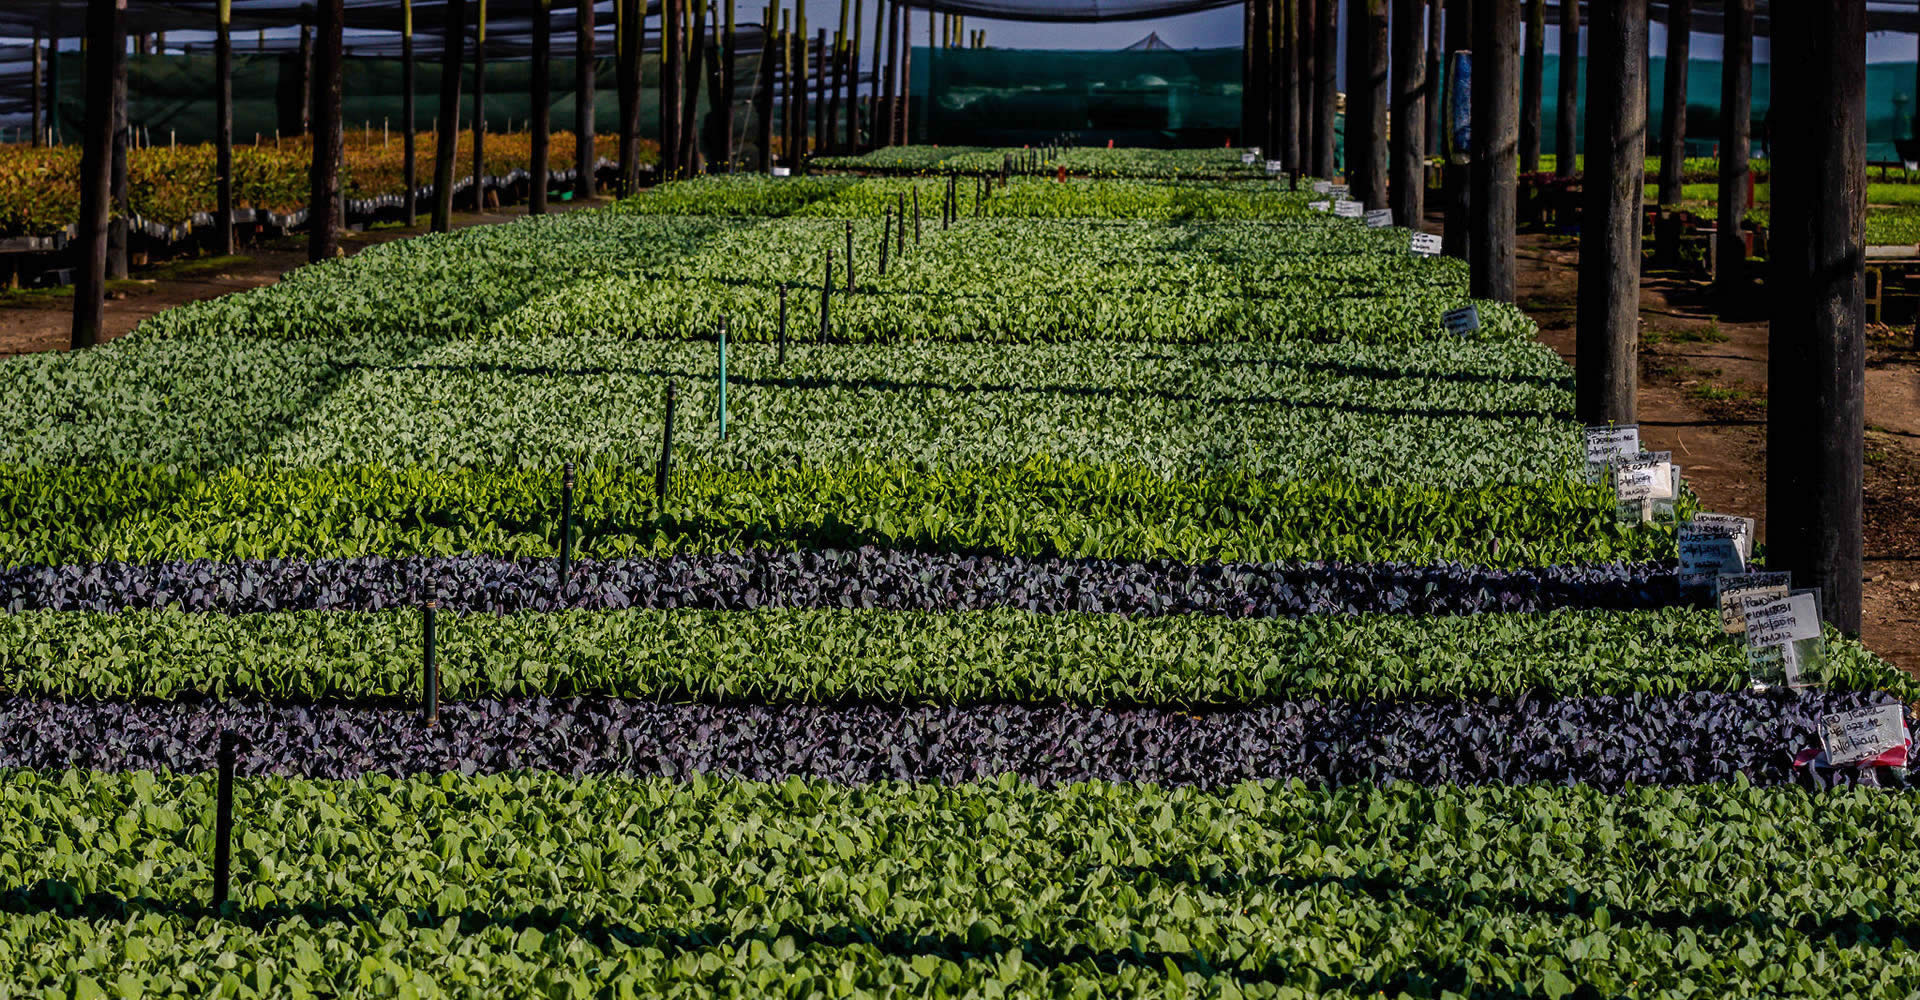 Sunshine Seedling Services - Vegetable Seedling Nursery - Pietermaritsburg, South Africa